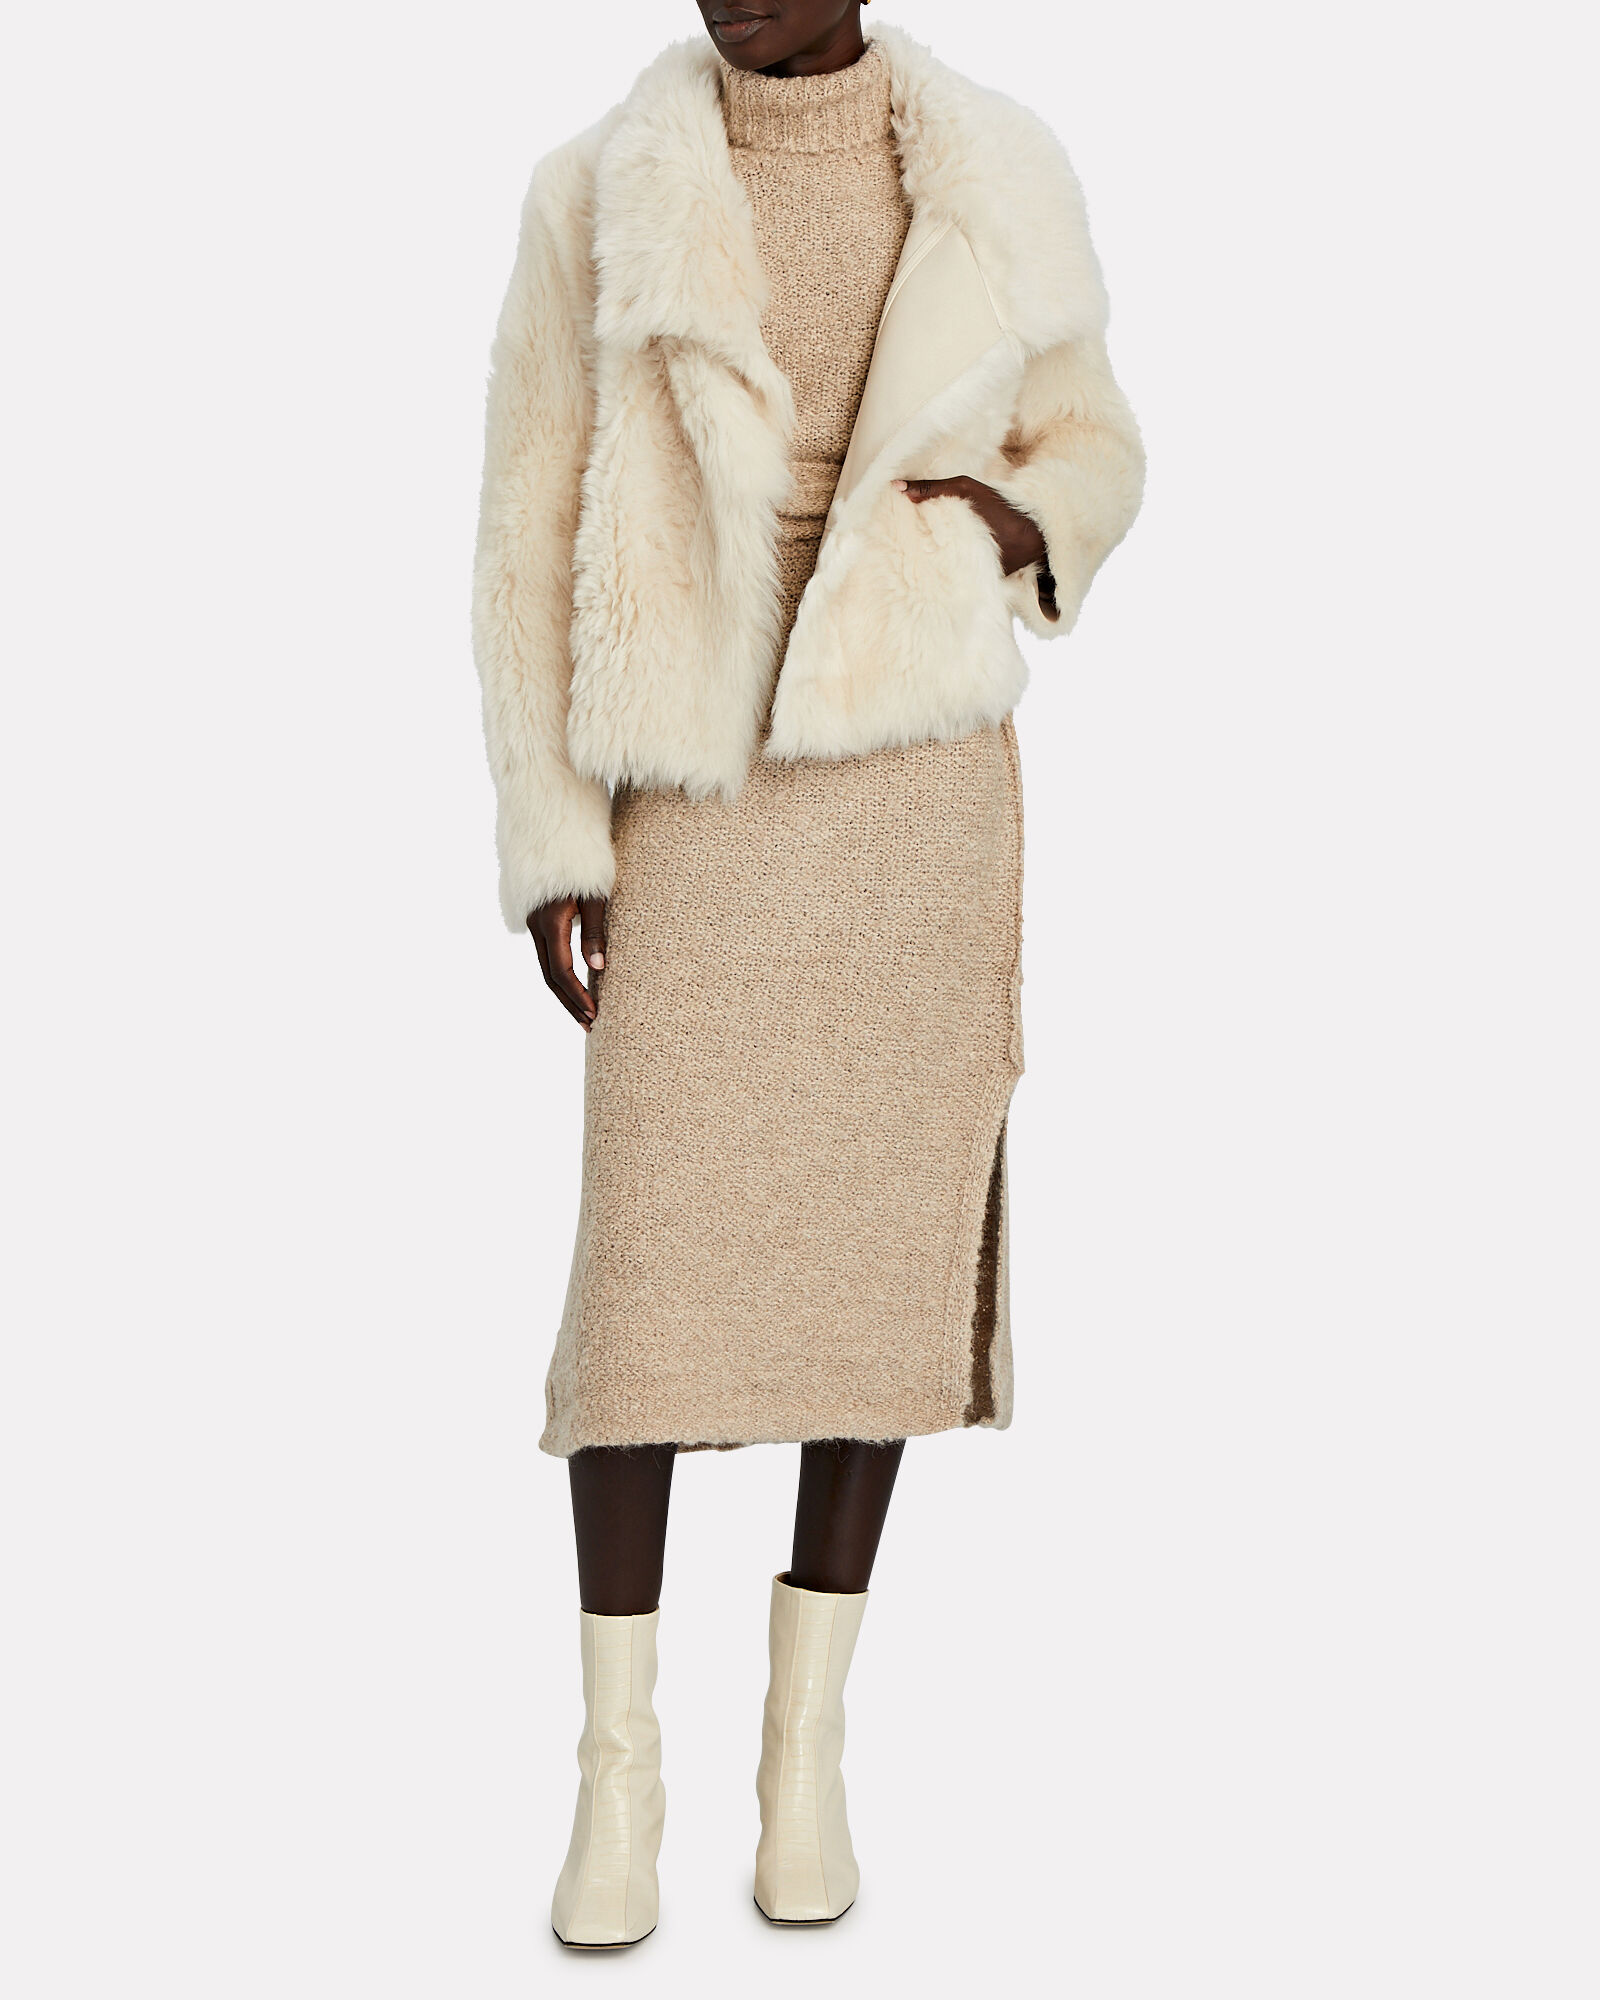 Reversible Shearling Jacket, IVORY, hi-res